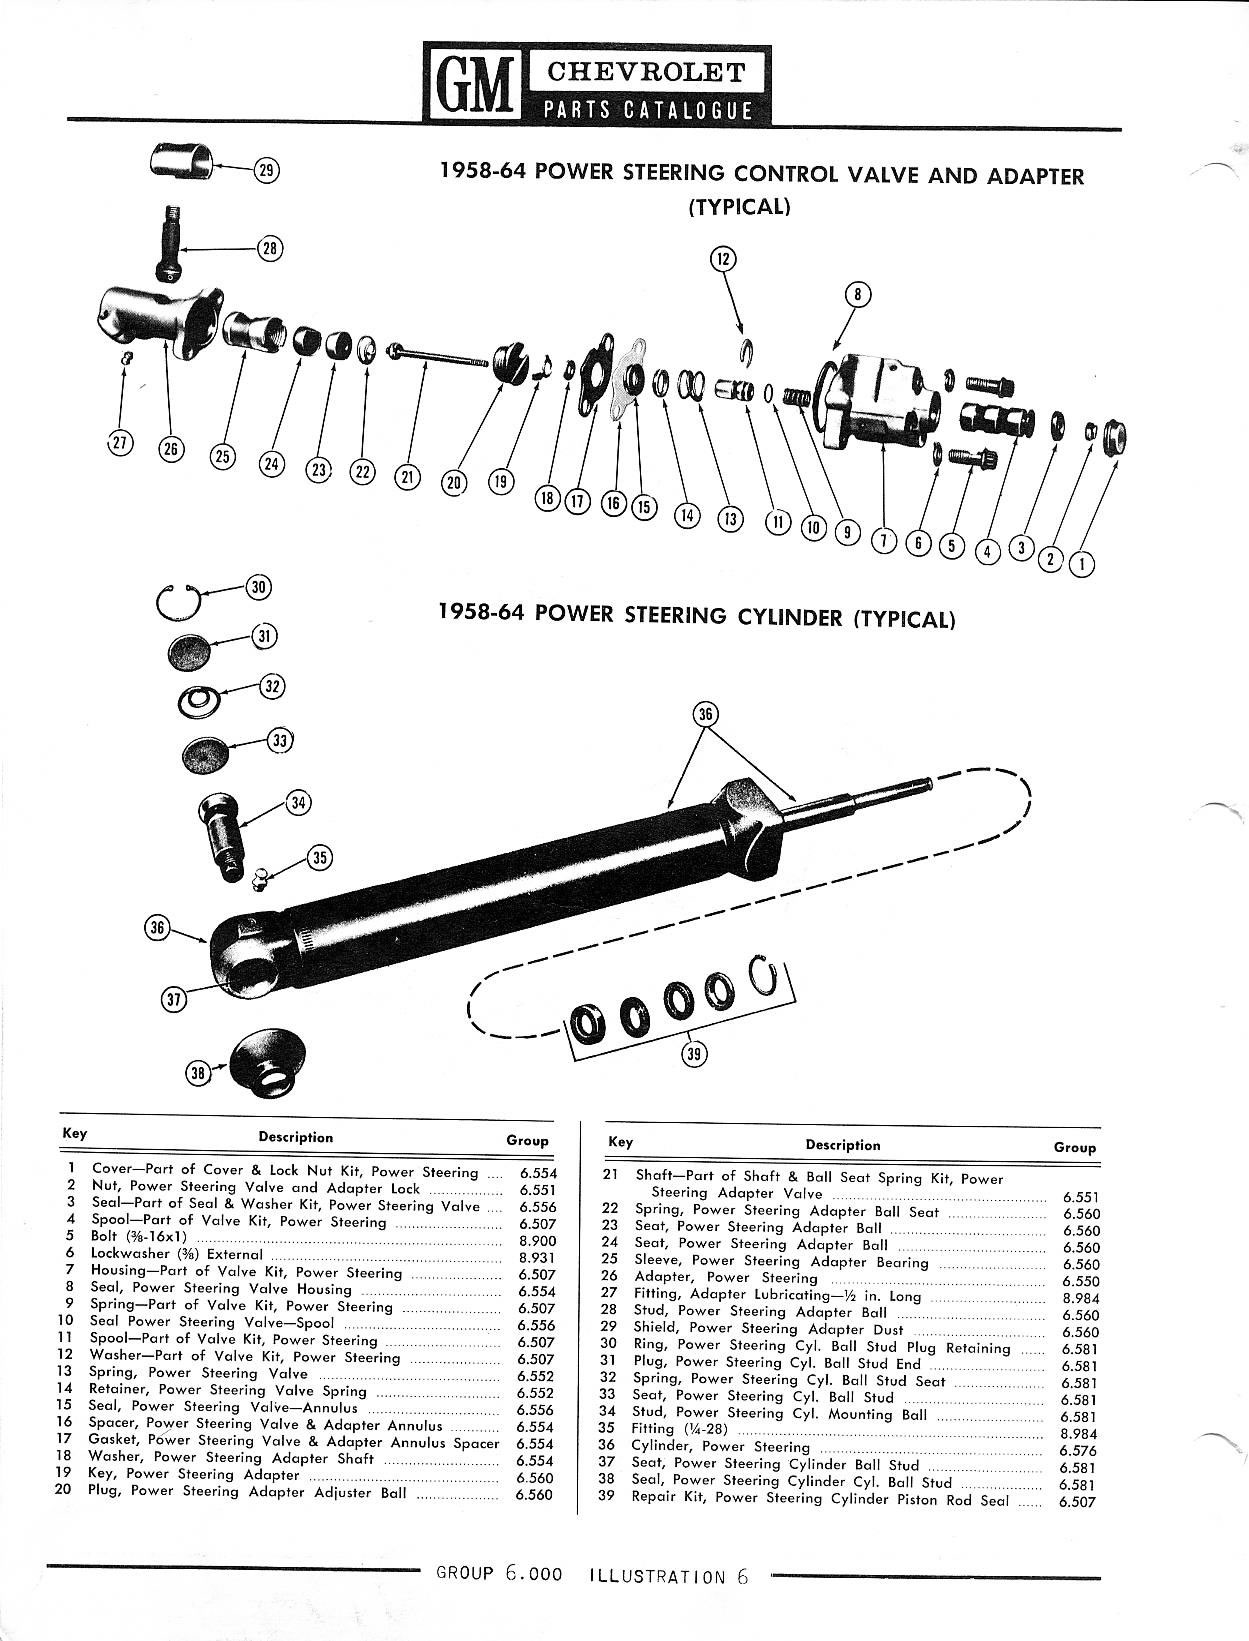 1964 impala fuse box diagram   28 wiring diagram images